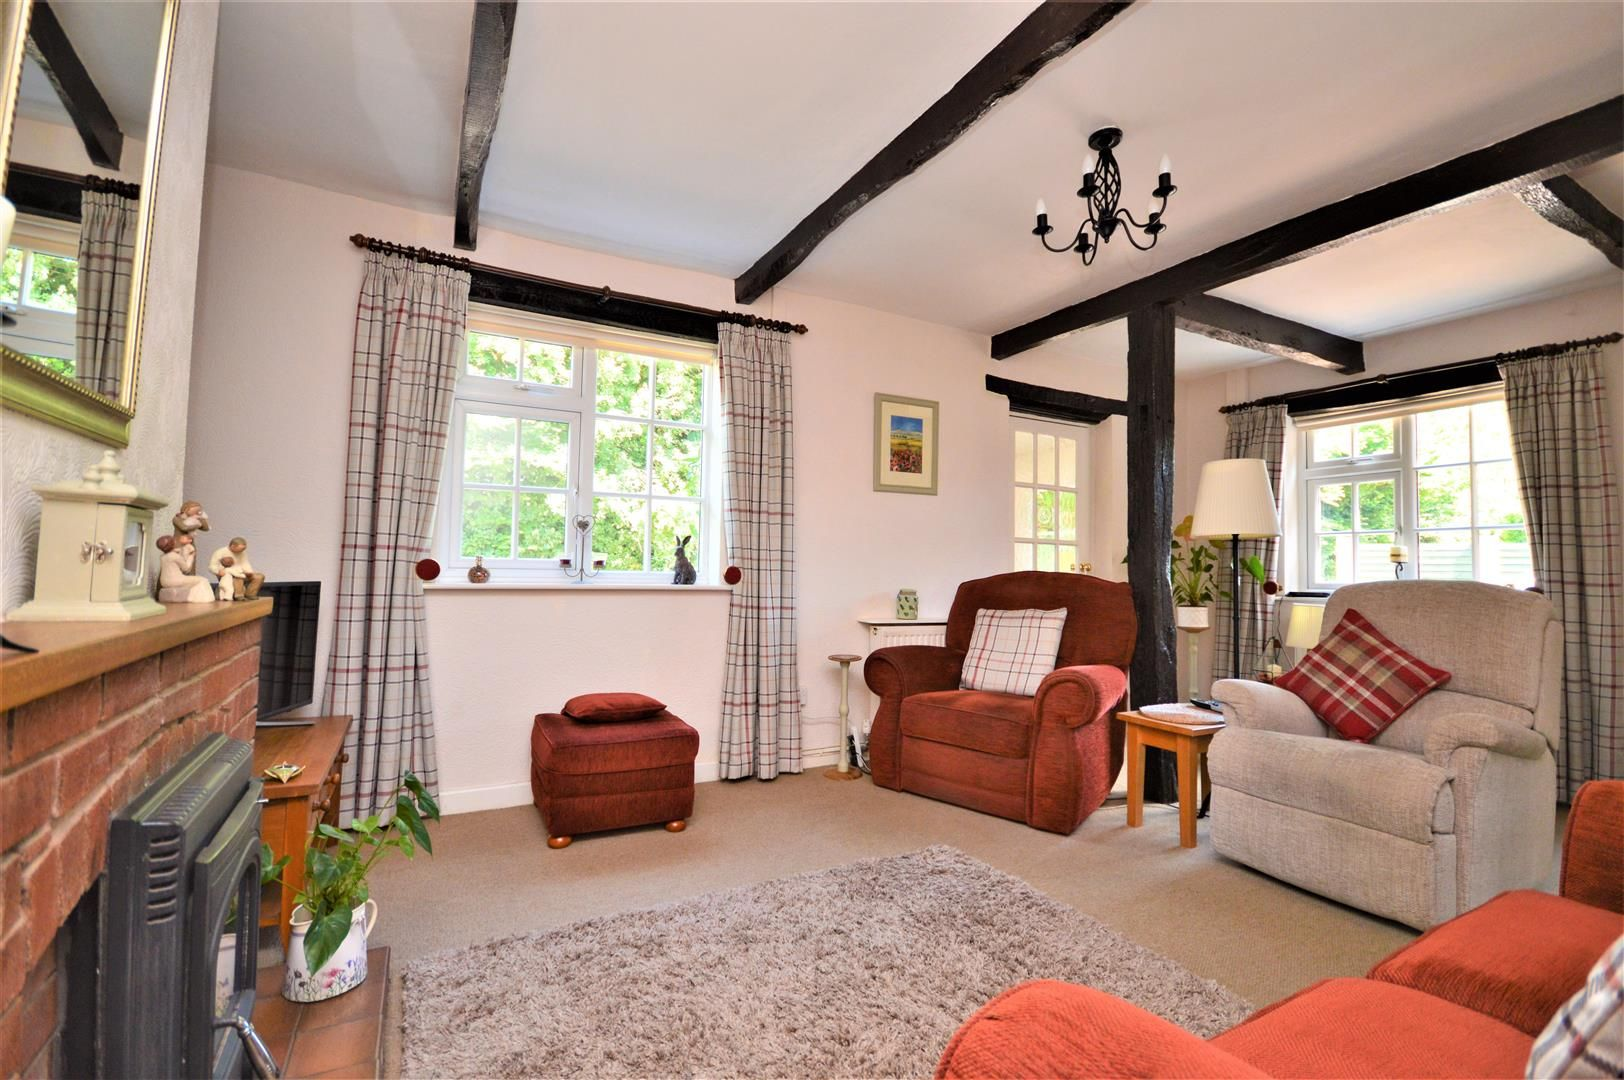 3 bed semi-detached for sale in Madley 8